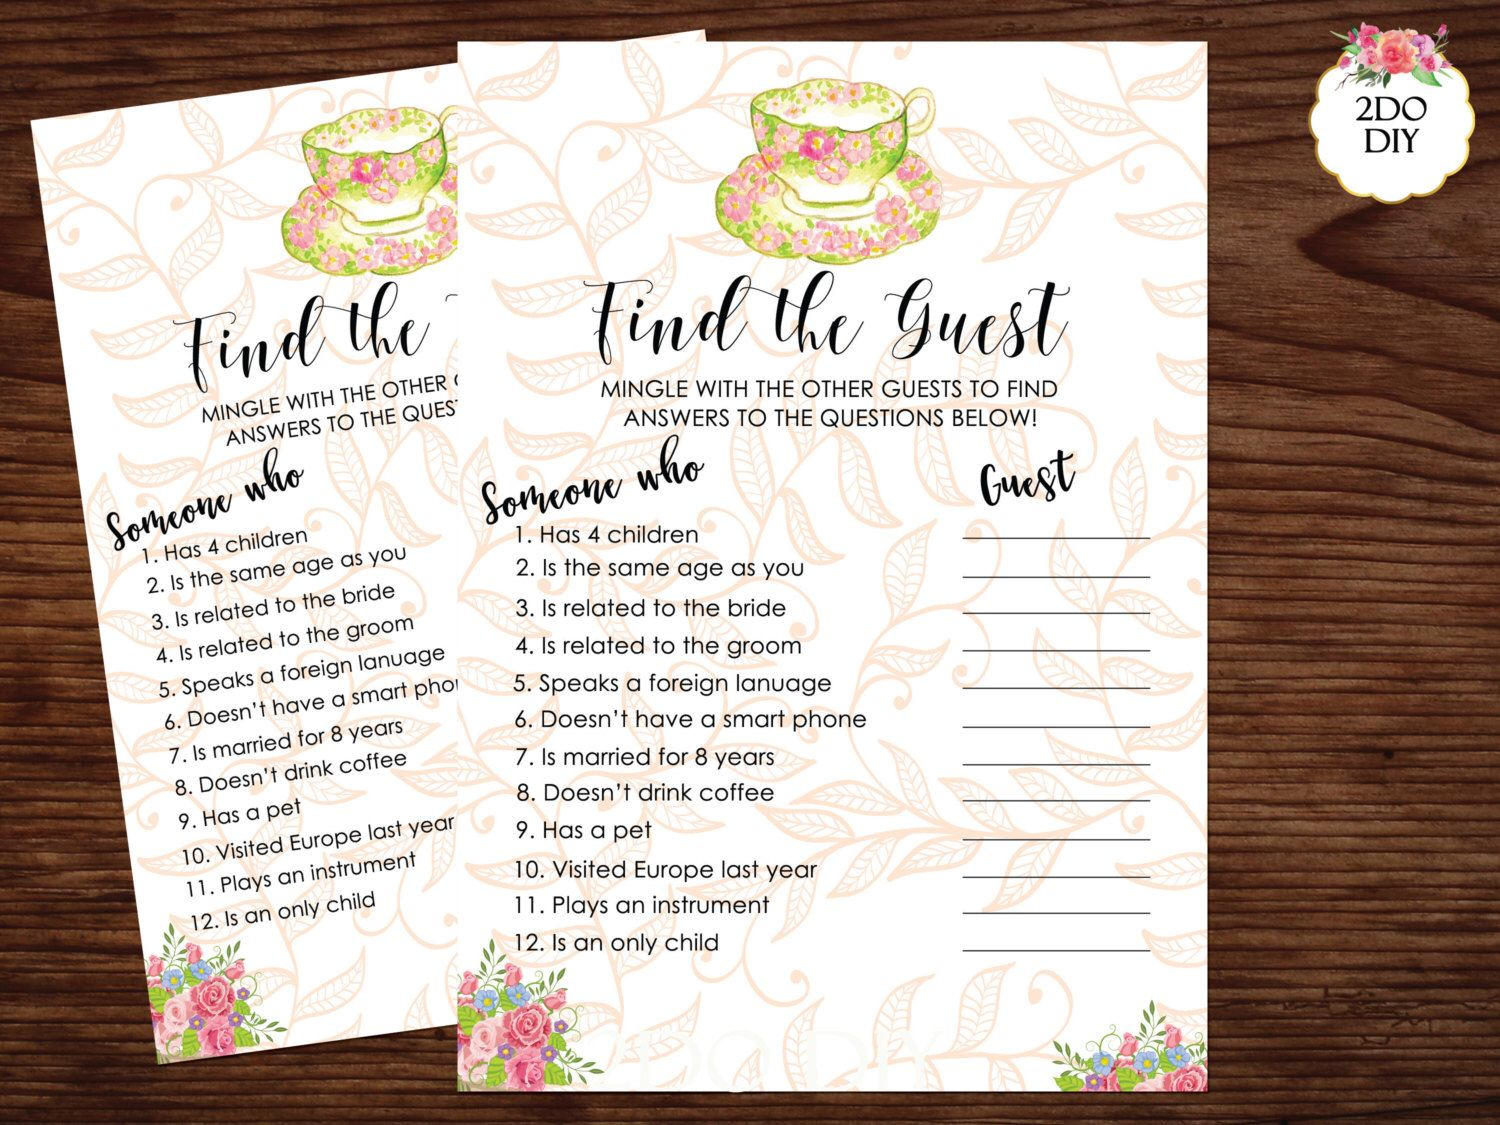 It's just a photo of Impertinent Free Printable Tea Party Games